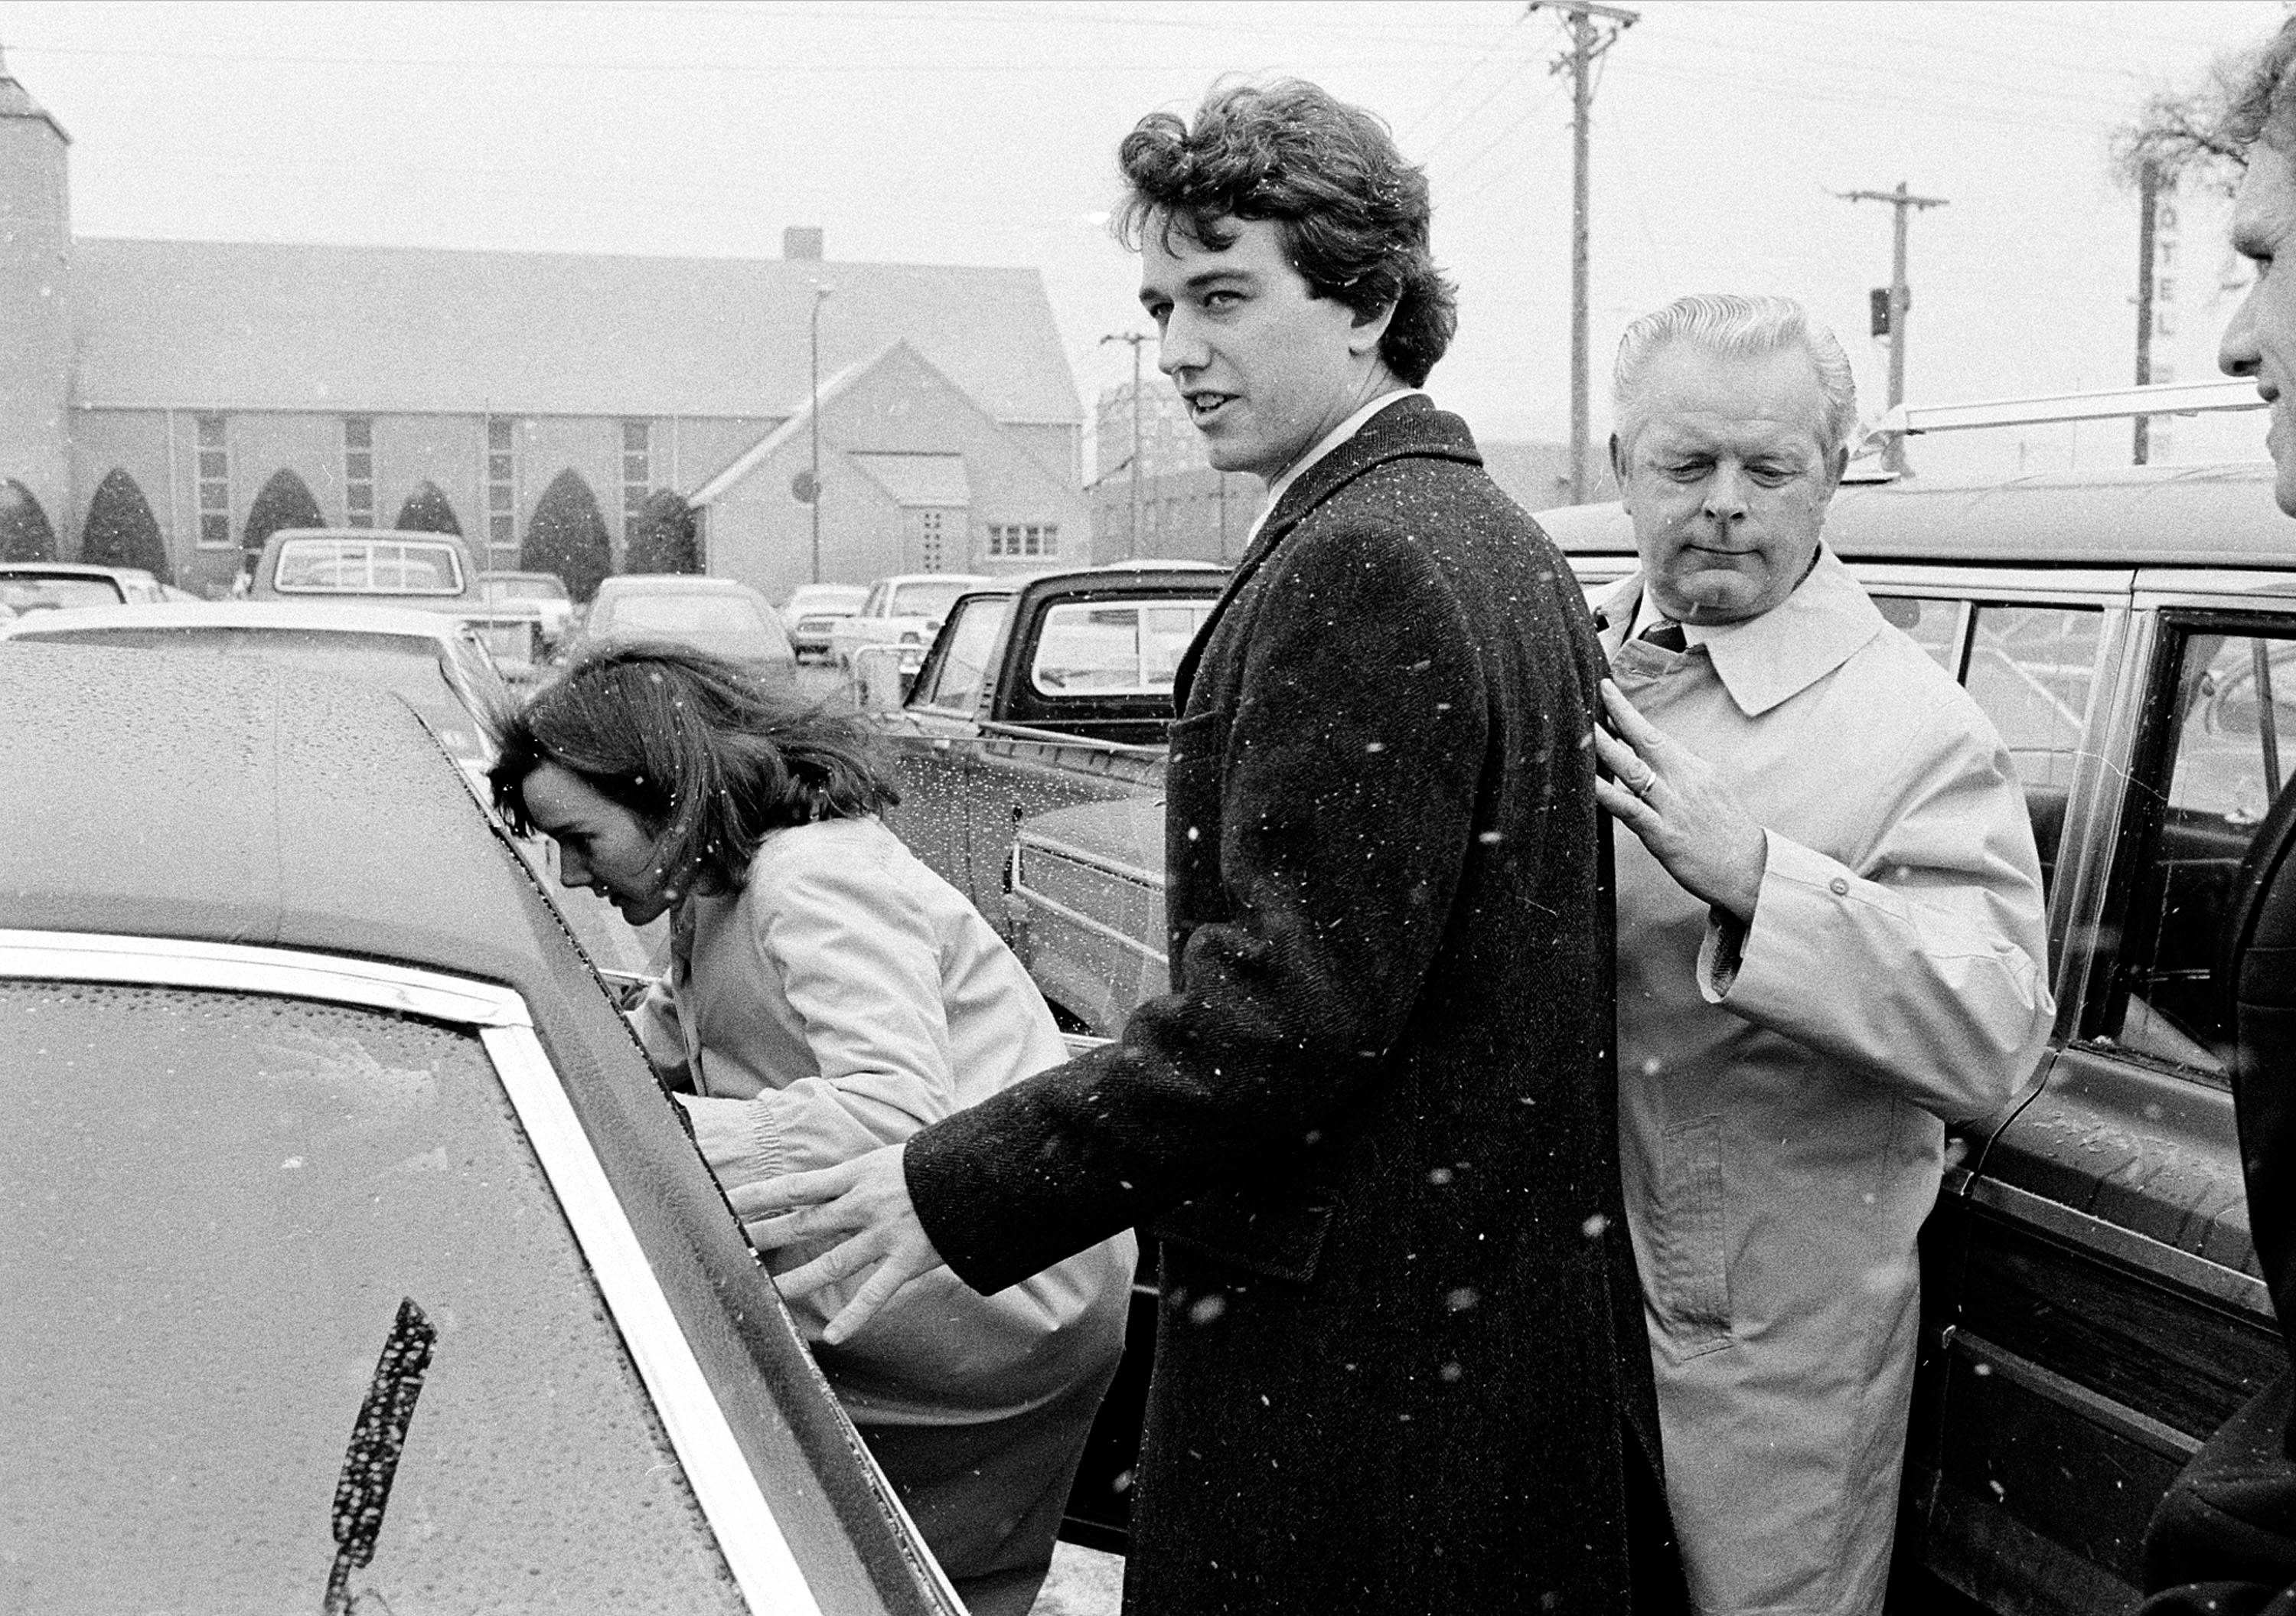 FILE - In this March 17, 1984 file photo, Robert Kennedy Jr. and his wife, Emily, get into a car as they are escorted by private investigator Don Wiley outside the courthouse in Rapid City, S.D. Kennedy received a suspended sentence and two years probation on his guilty plea to a charge of heroin possession.